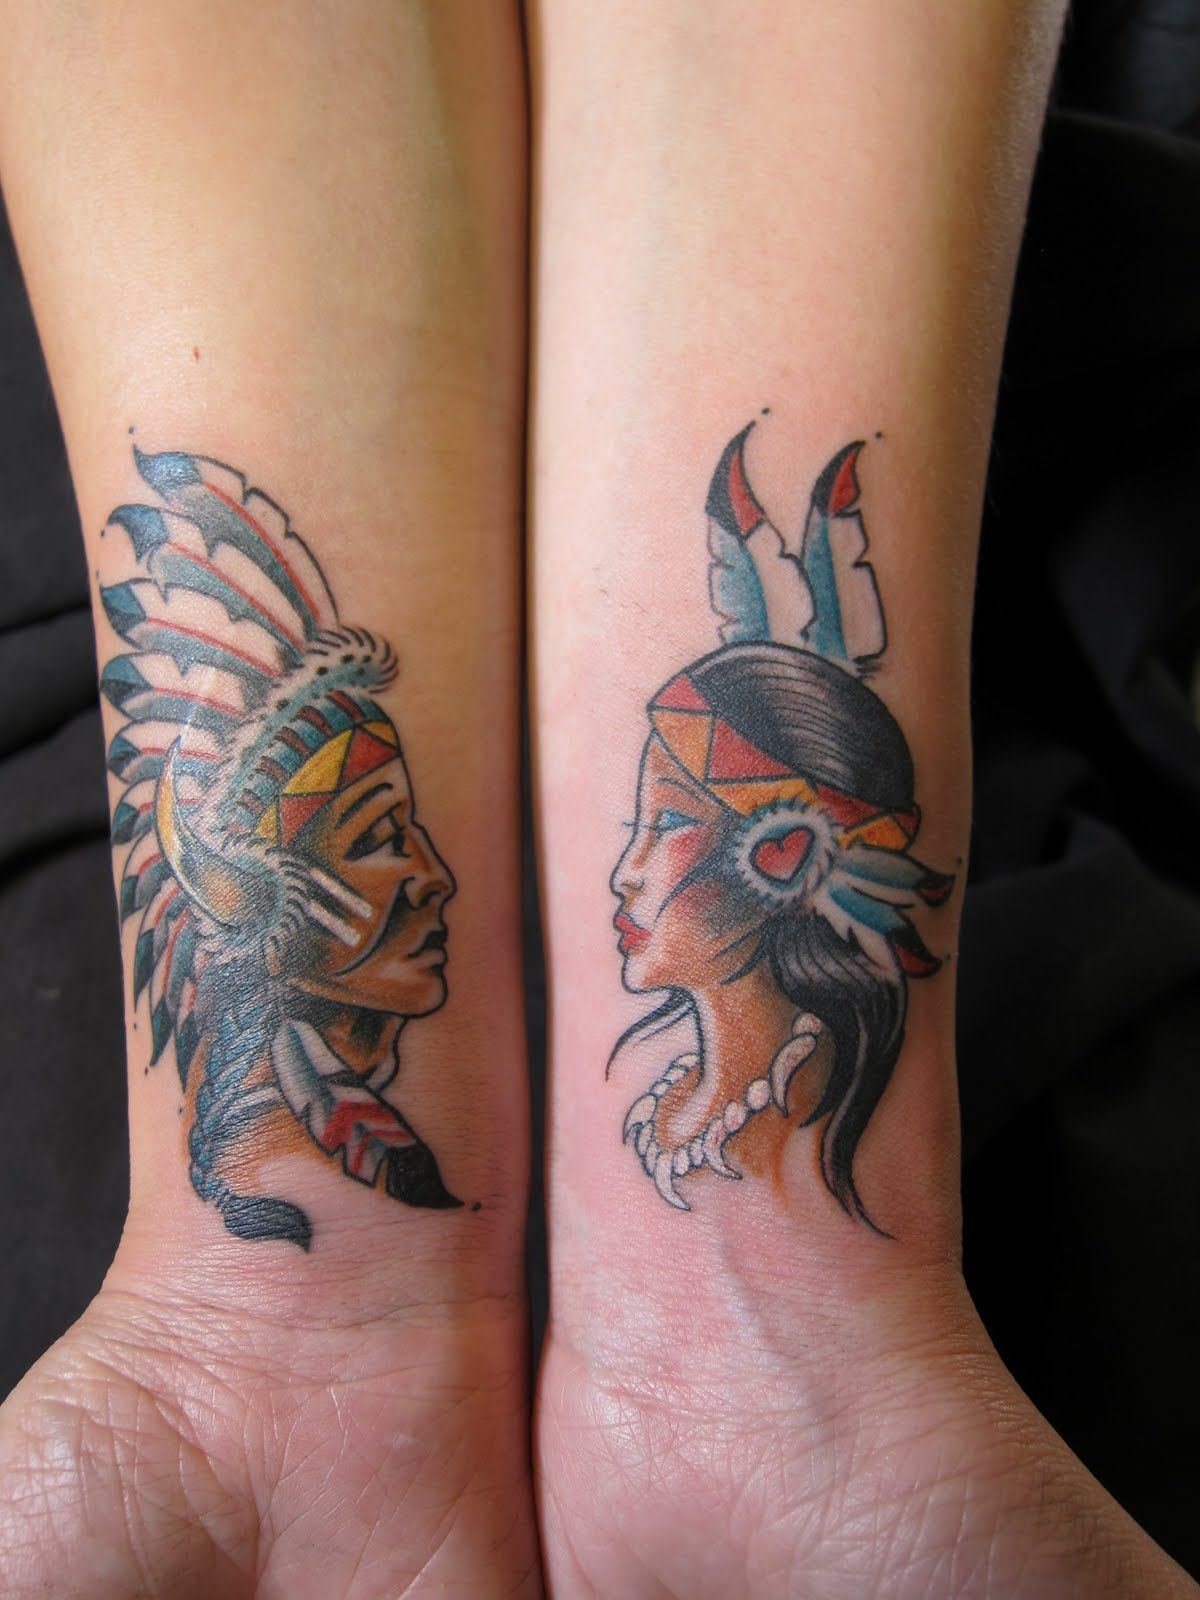 15 Native American Tattoos Ideas For Women Couples Tattoo